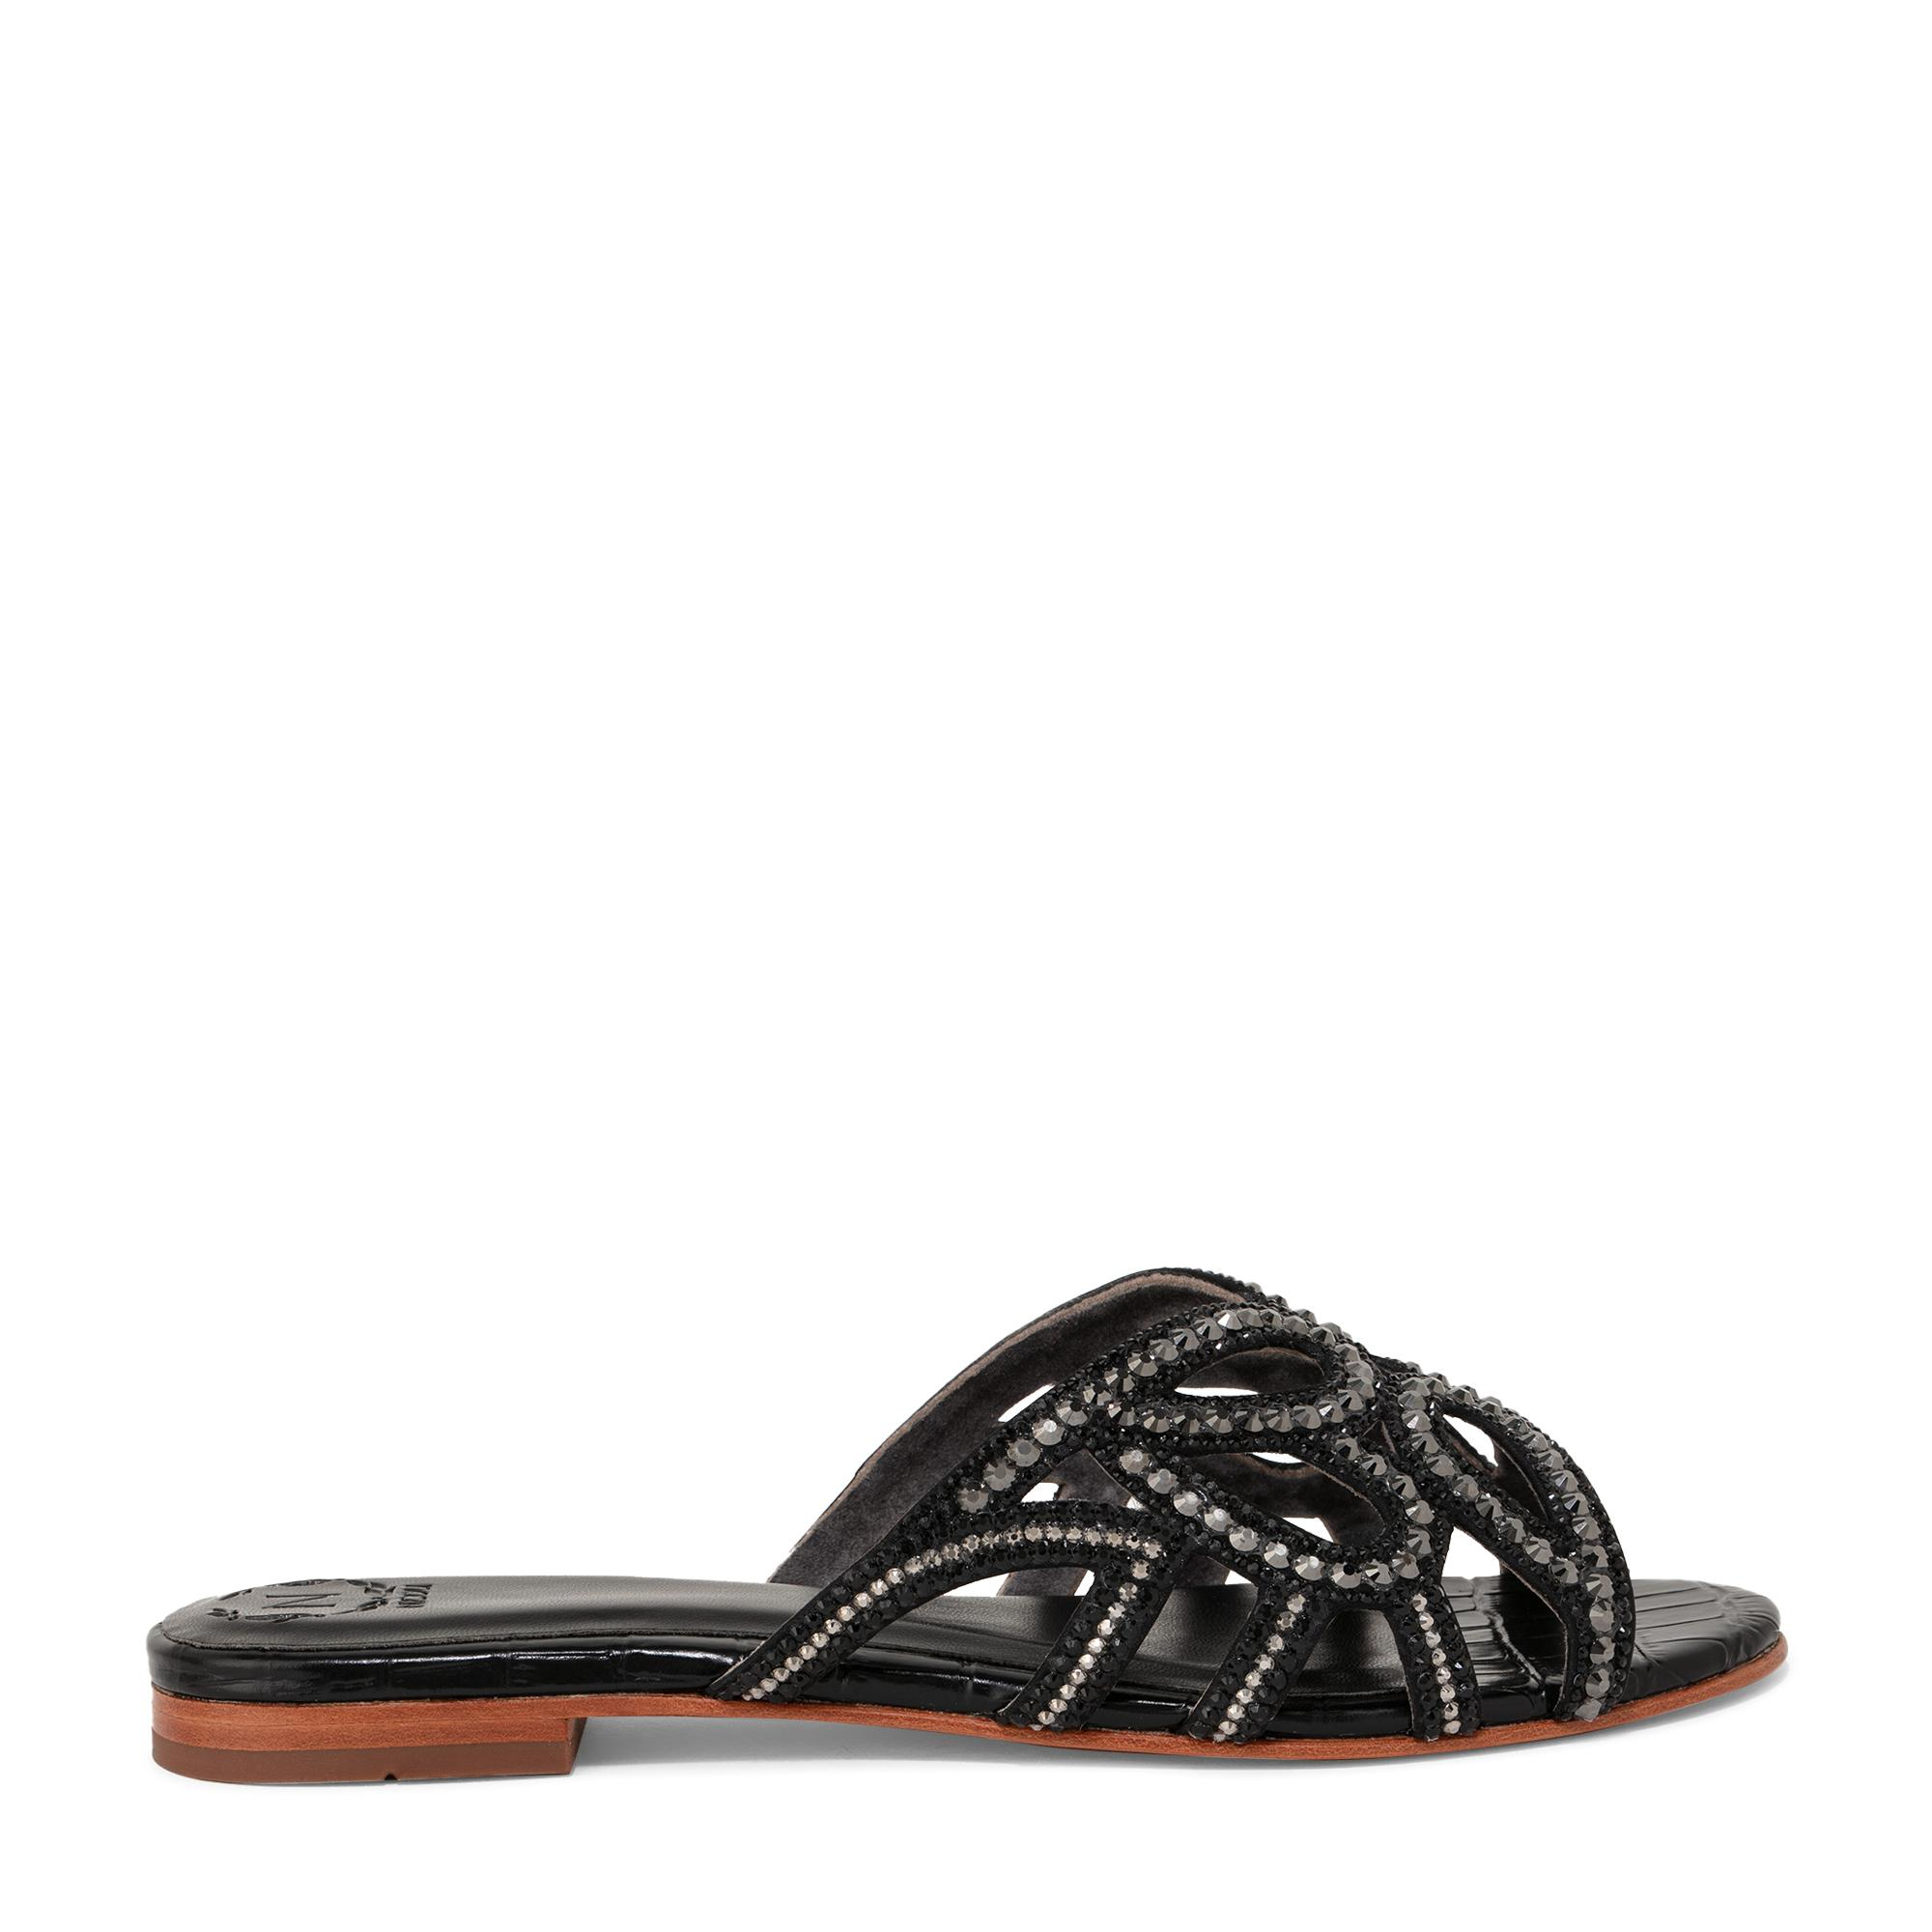 Antery flat sandals